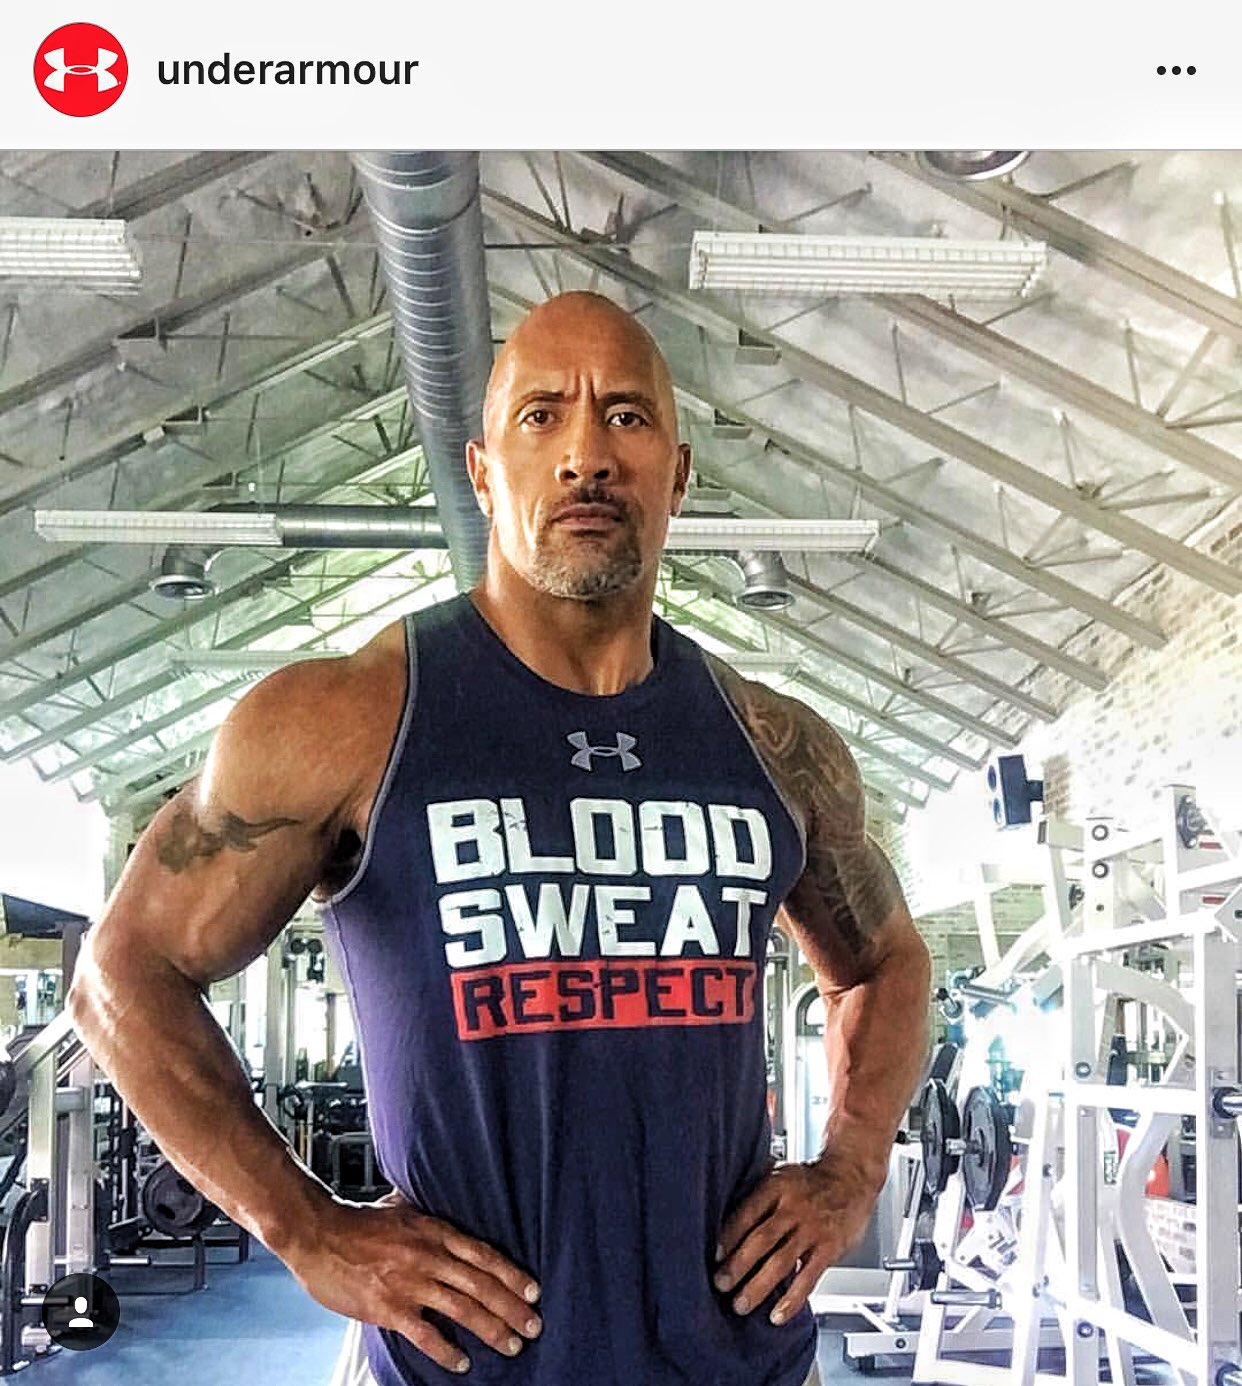 Thank U for making our #ProjectRock shirts, @UnderArmour's #1 seller. #BloodSweatRespect������ https://t.co/vYtBQVsMjX https://t.co/Al7dRHdtx6